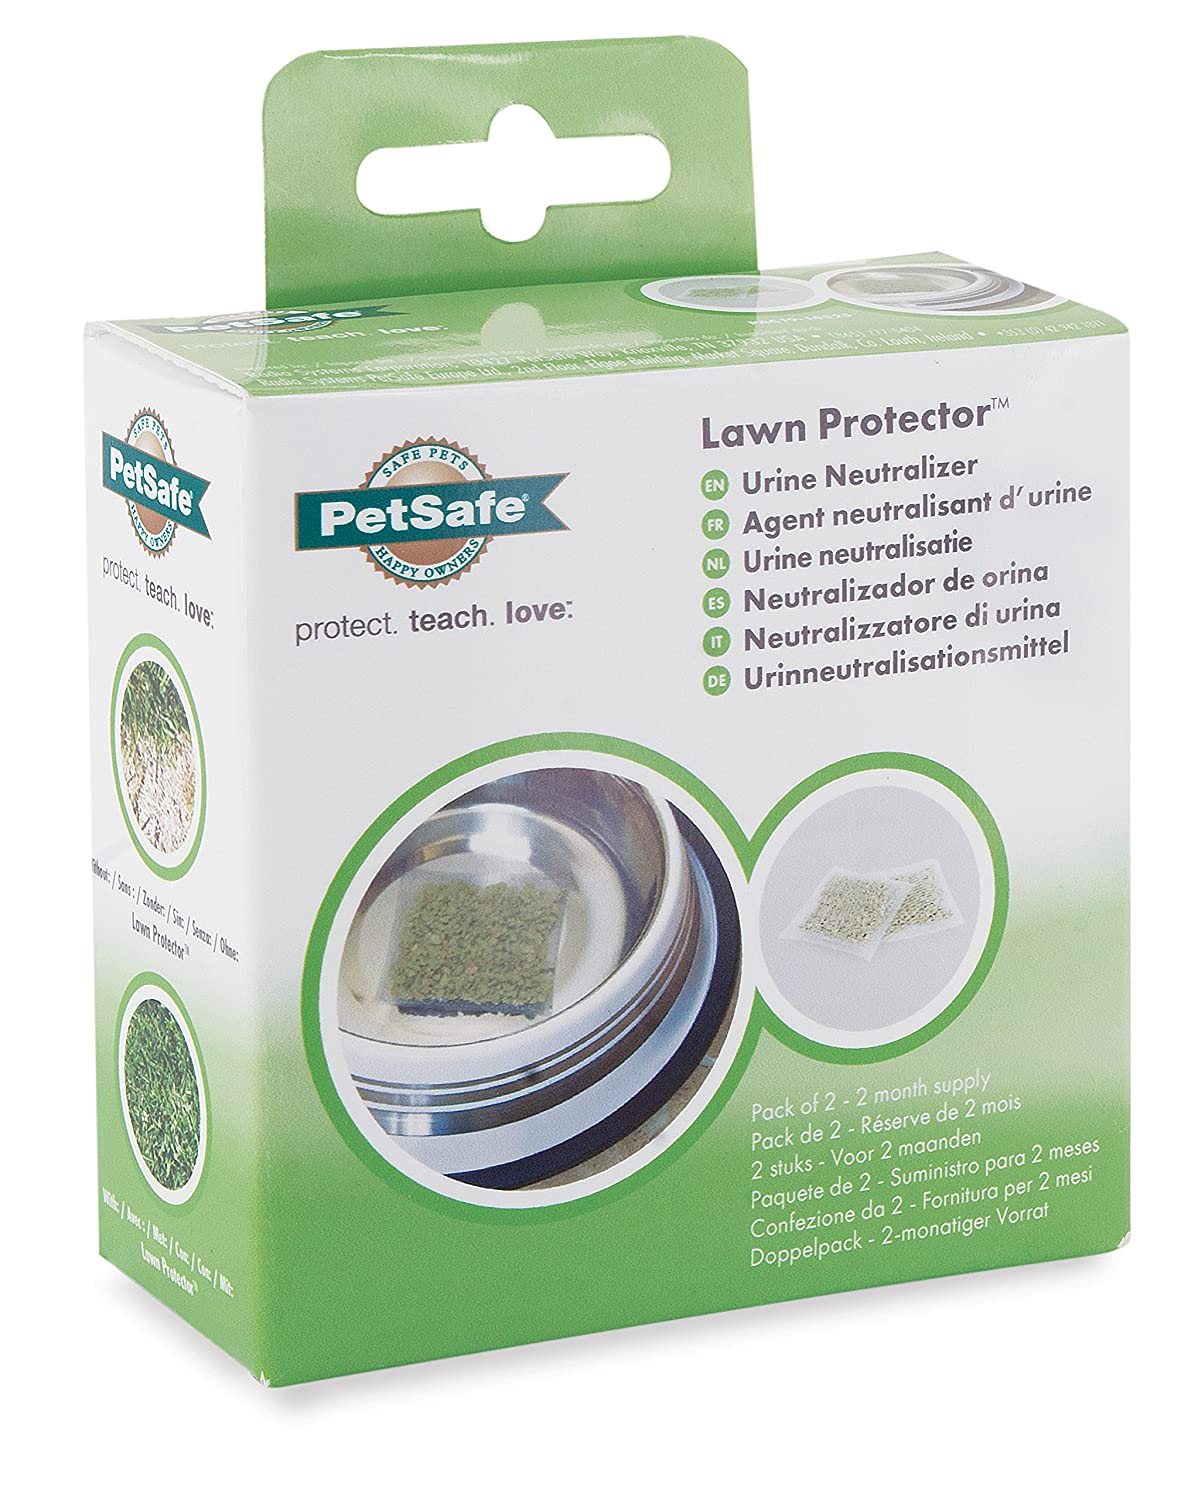 Pet Supplies : PetSafe Lawn Protector Urine Neutraliser, Water Purifier, No Grass Burn : Amazon.com